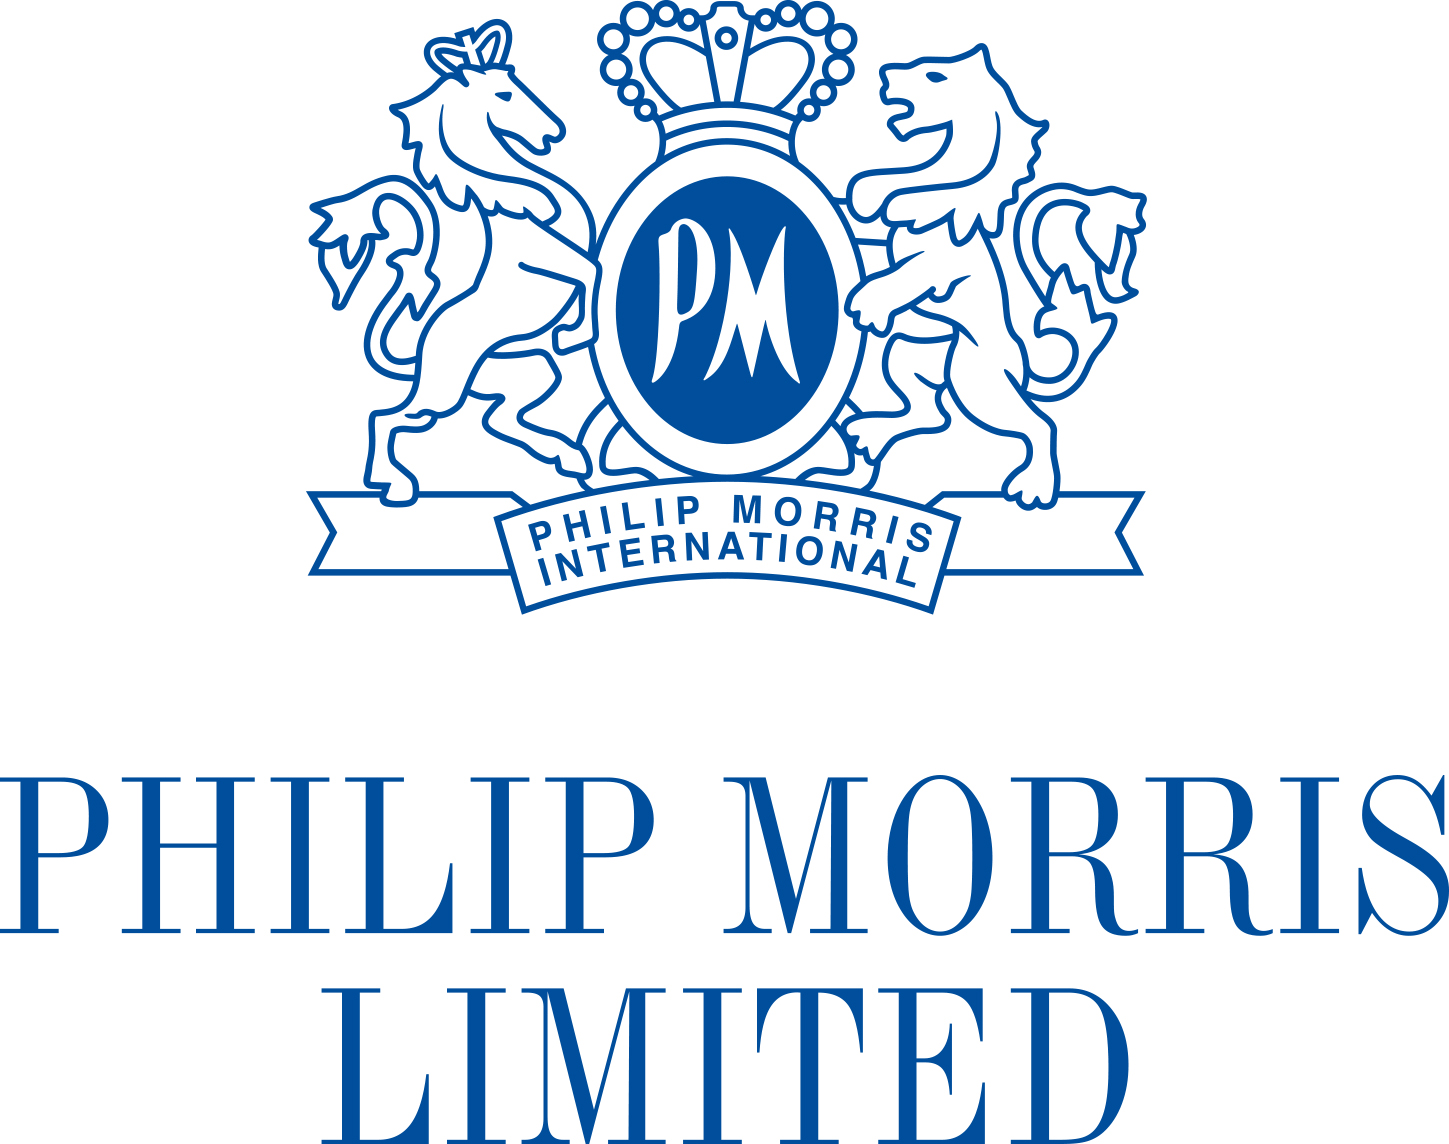 Philip Morris Ltd logo